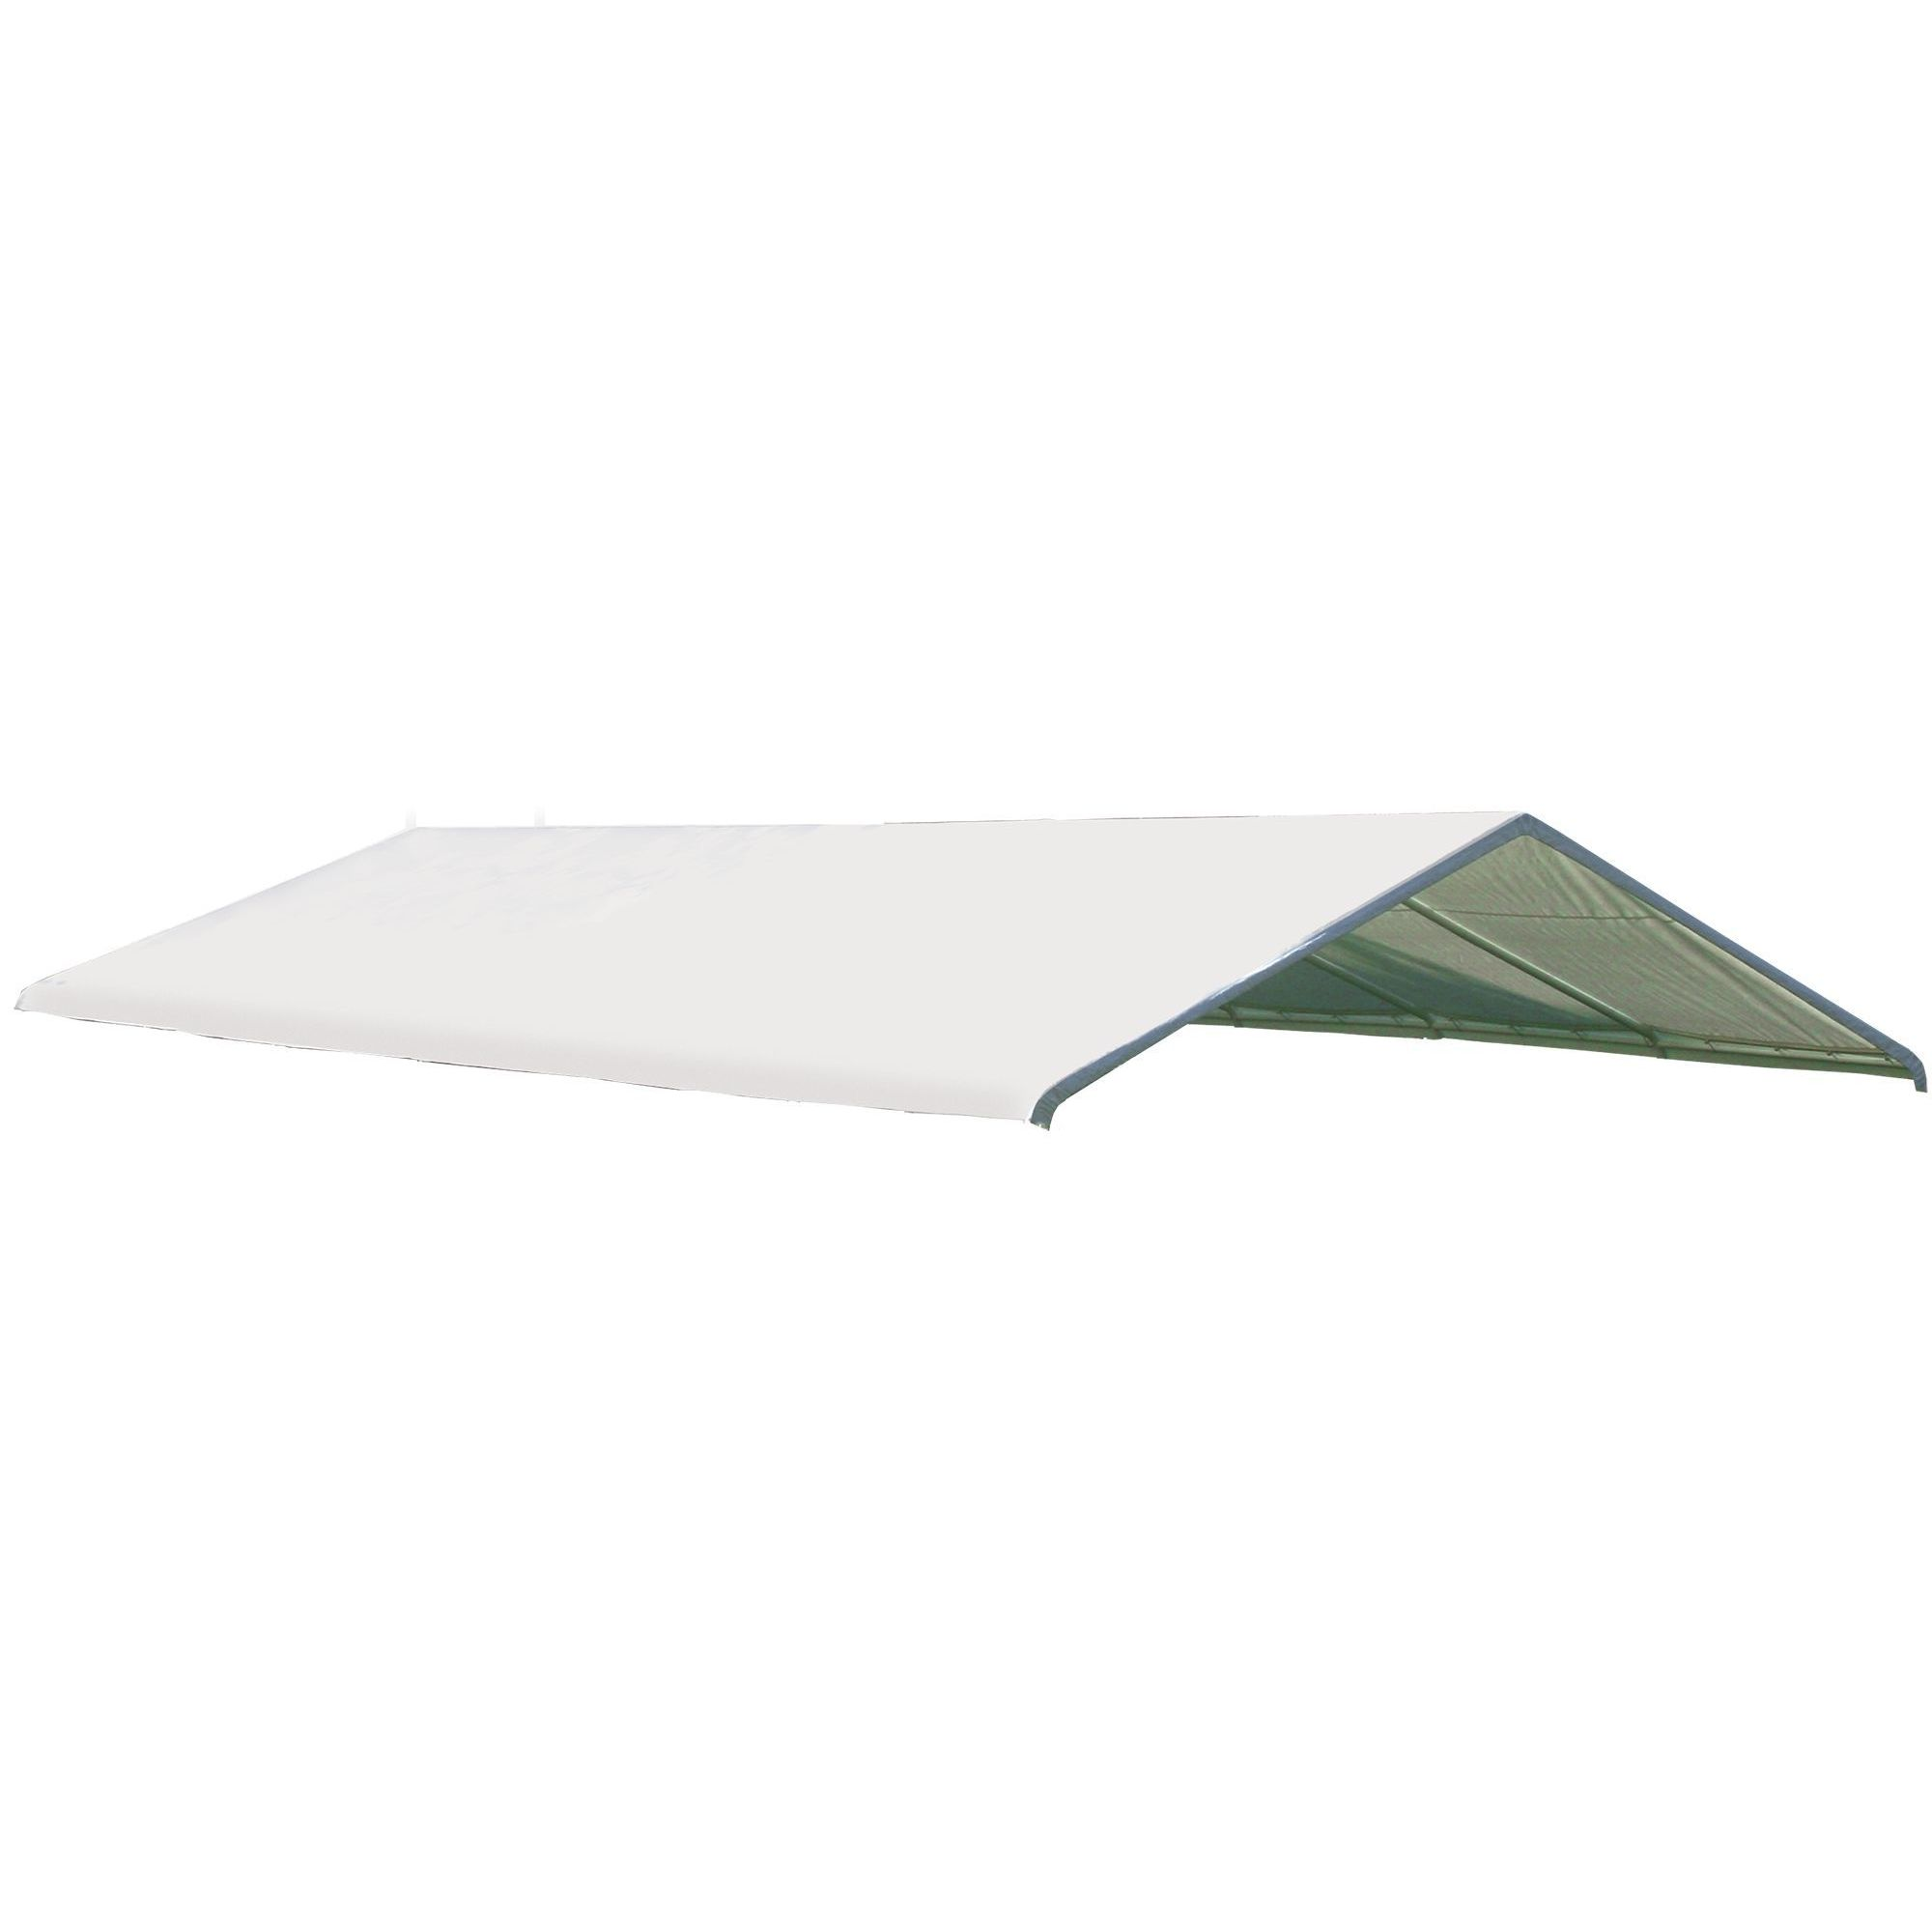 ShelterLogic White Canopy Replacement Cover (Canopy Repla...